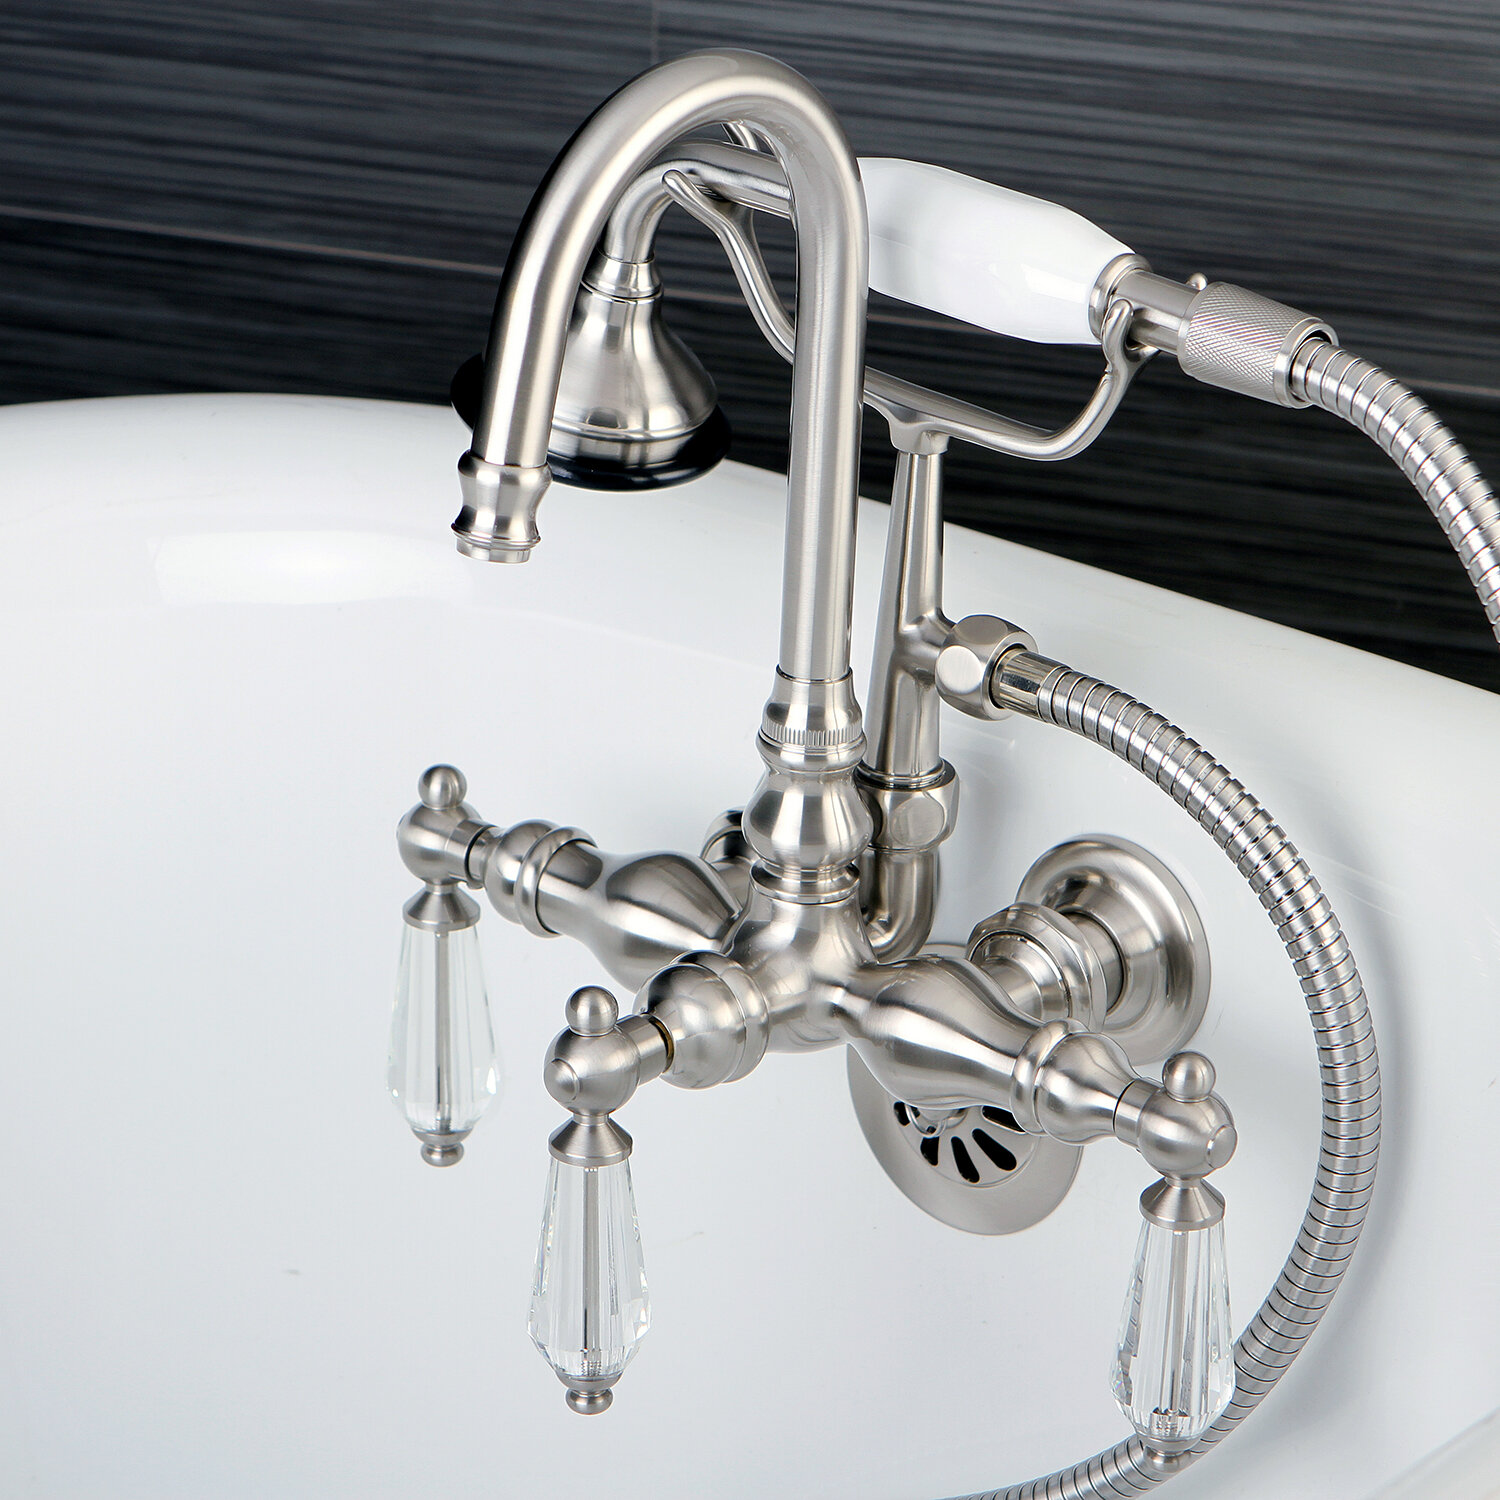 Kingston Brass Wilshire Triple Handle Wall Mounted Clawfoot Tub Faucet Trim With Diverter And Handshower Reviews Wayfair